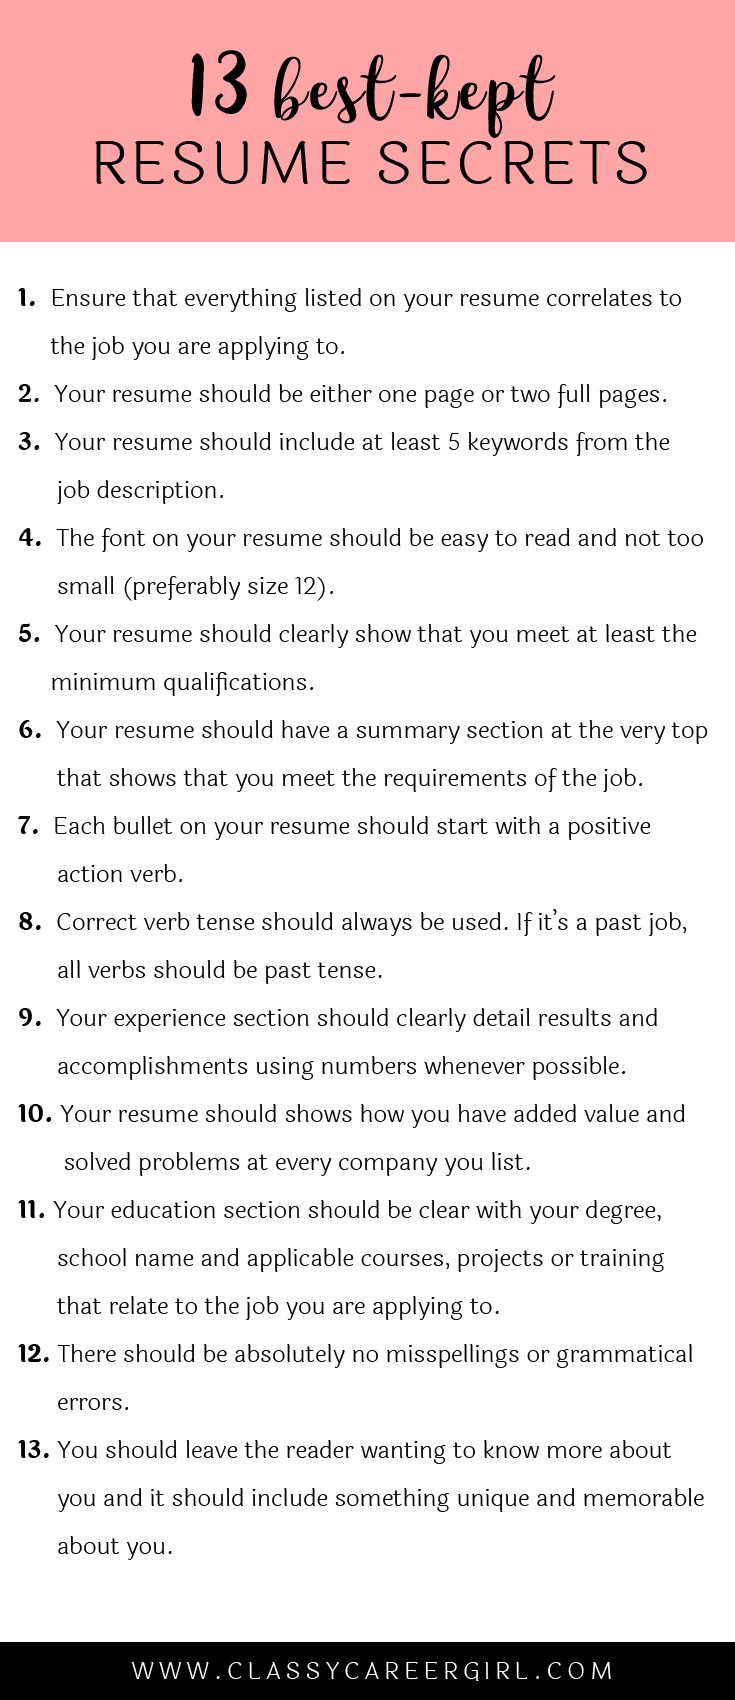 Picnictoimpeachus  Unique  Ideas About Resume On Pinterest  Cv Format Resume Cv And  With Exciting Some Hiring Managers Will Toss Your Resume Out If You Dont Know These  With Cute Grocery Store Resume Also Free Create A Resume In Addition Resume One Page And Pastoral Resume As Well As Resume Template In Word Additionally Resume Verb From Pinterestcom With Picnictoimpeachus  Exciting  Ideas About Resume On Pinterest  Cv Format Resume Cv And  With Cute Some Hiring Managers Will Toss Your Resume Out If You Dont Know These  And Unique Grocery Store Resume Also Free Create A Resume In Addition Resume One Page From Pinterestcom